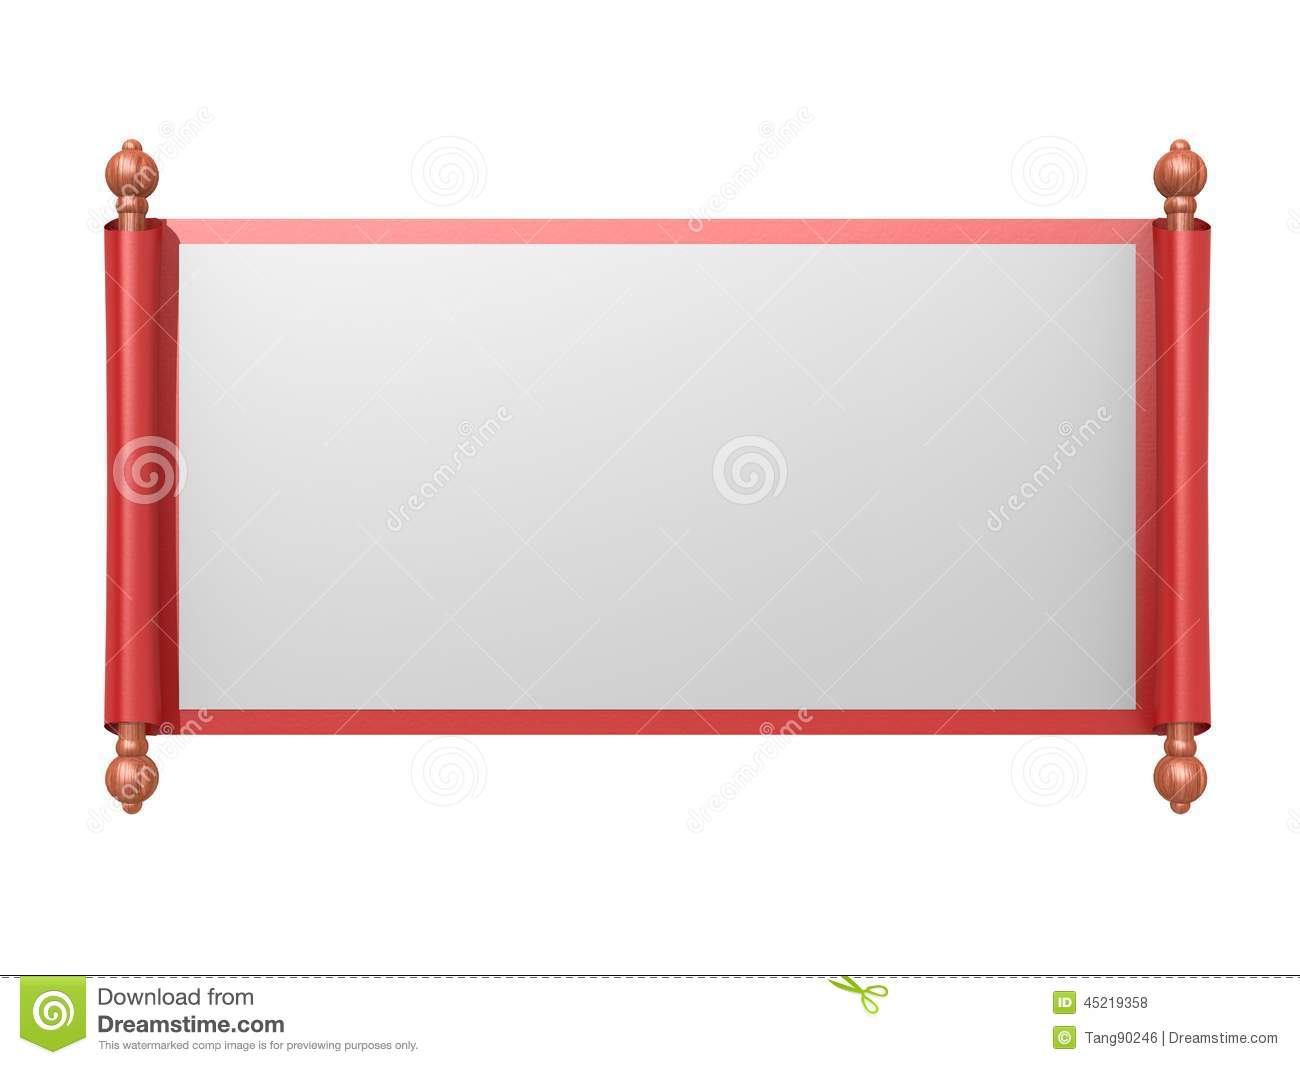 Stock Illustration Red White Scroll Paper Image Hi Res Rendered Artwork Could Be Used Any Graphic Design Image45219358 on Latest Parchment Writing Paper